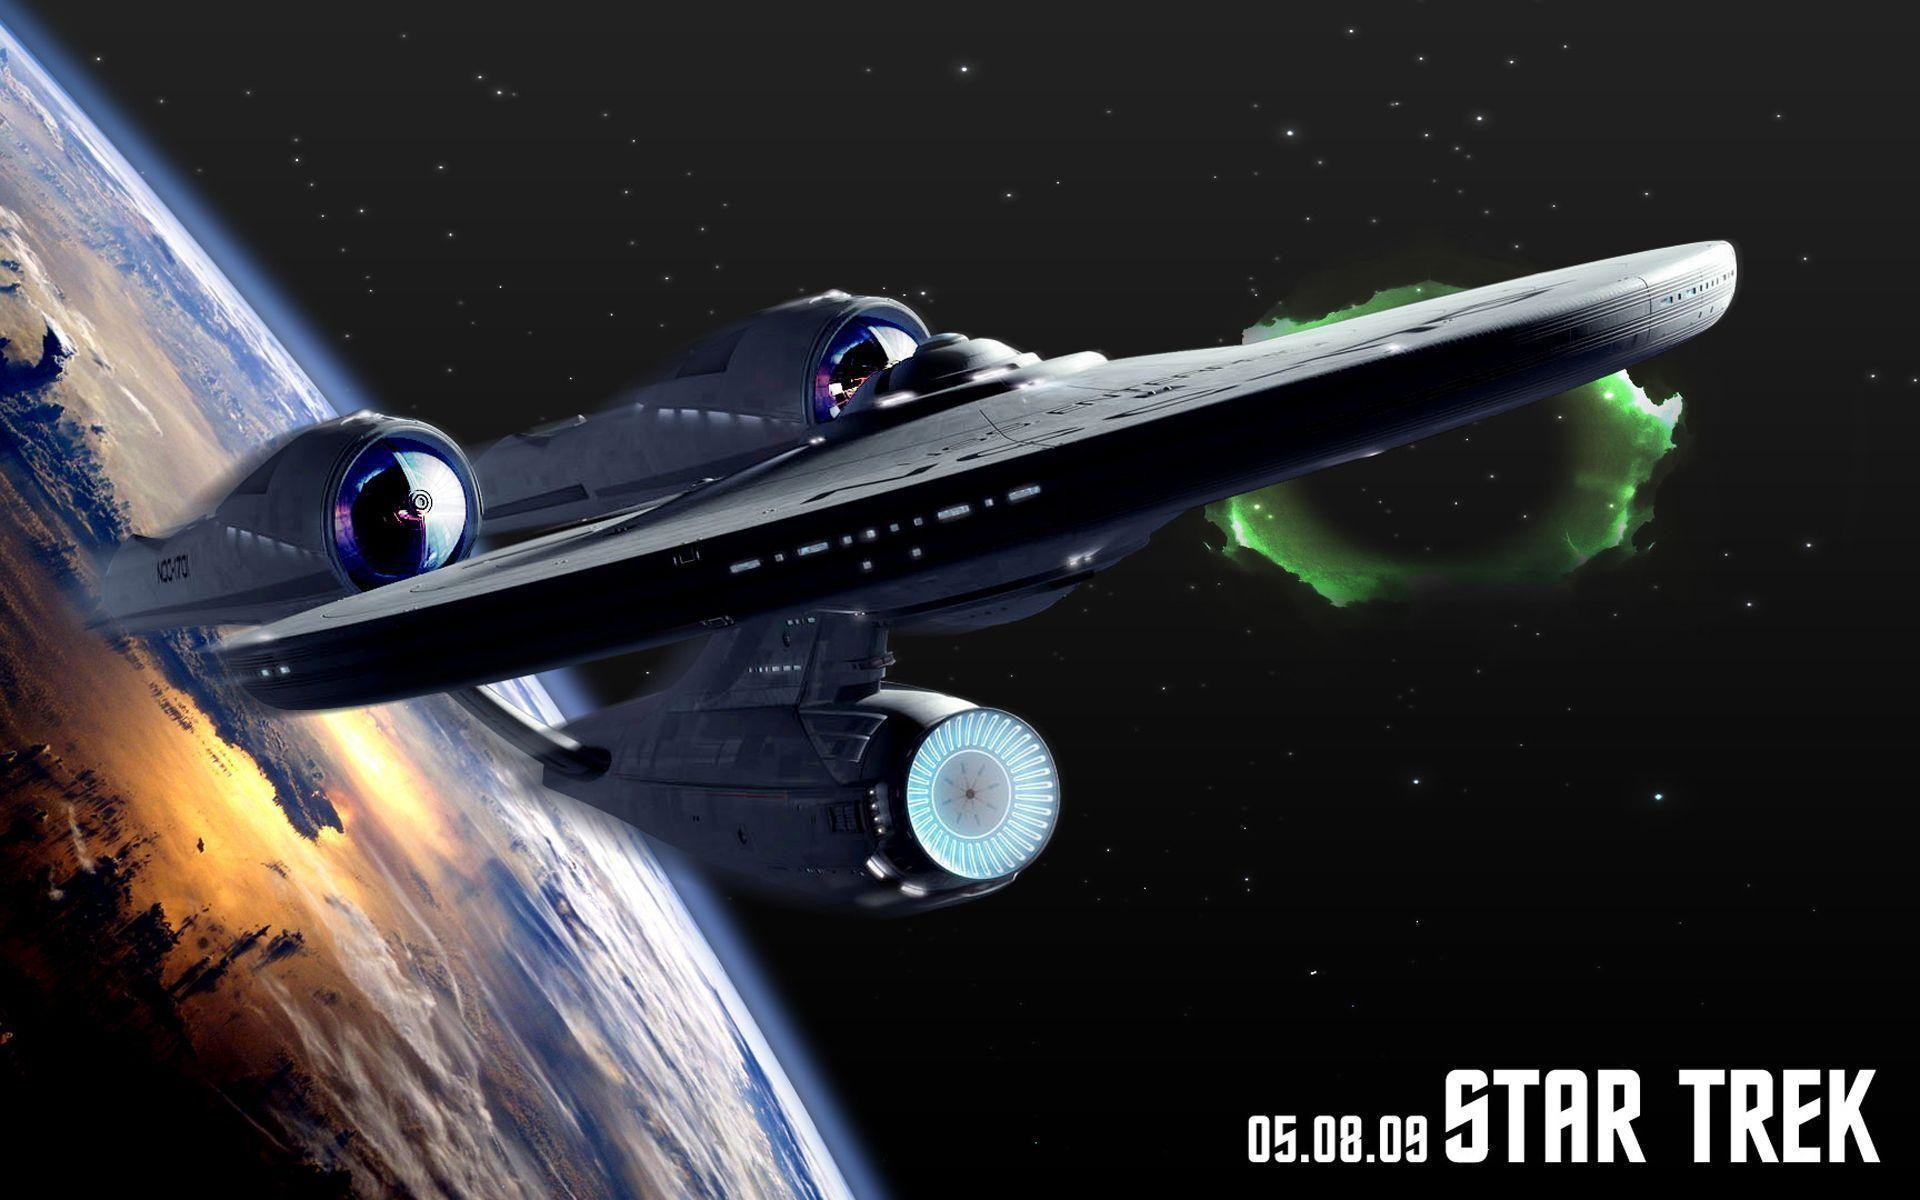 1920x1200 Star Trek USS Enterprise Wallpaper - WallpaperSafari